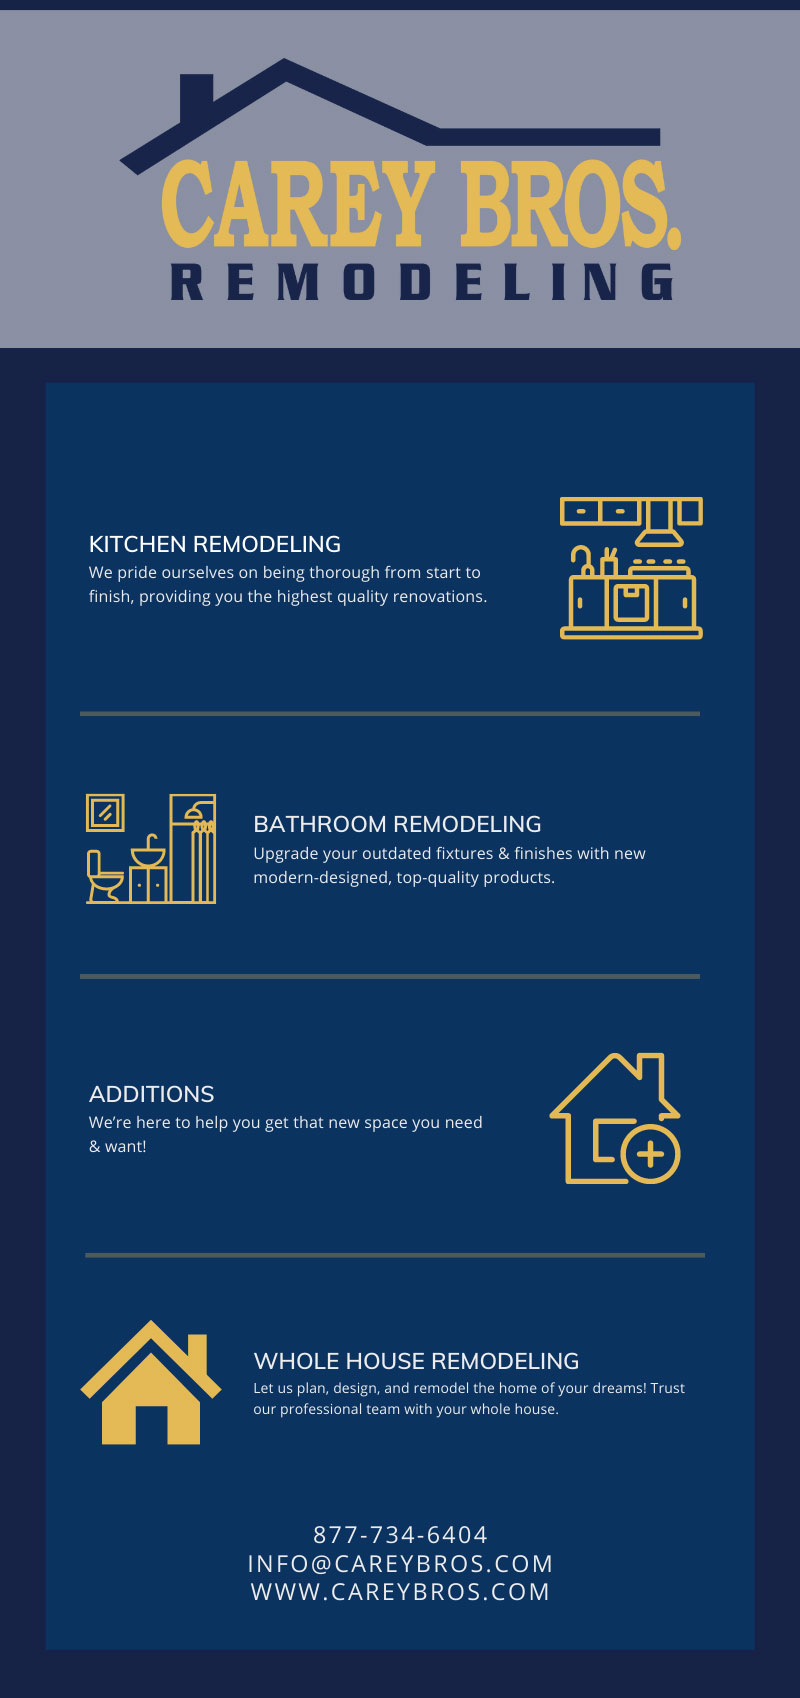 Kitchens, Baths, Additions, Remodeling, And Design – We Do It All 3